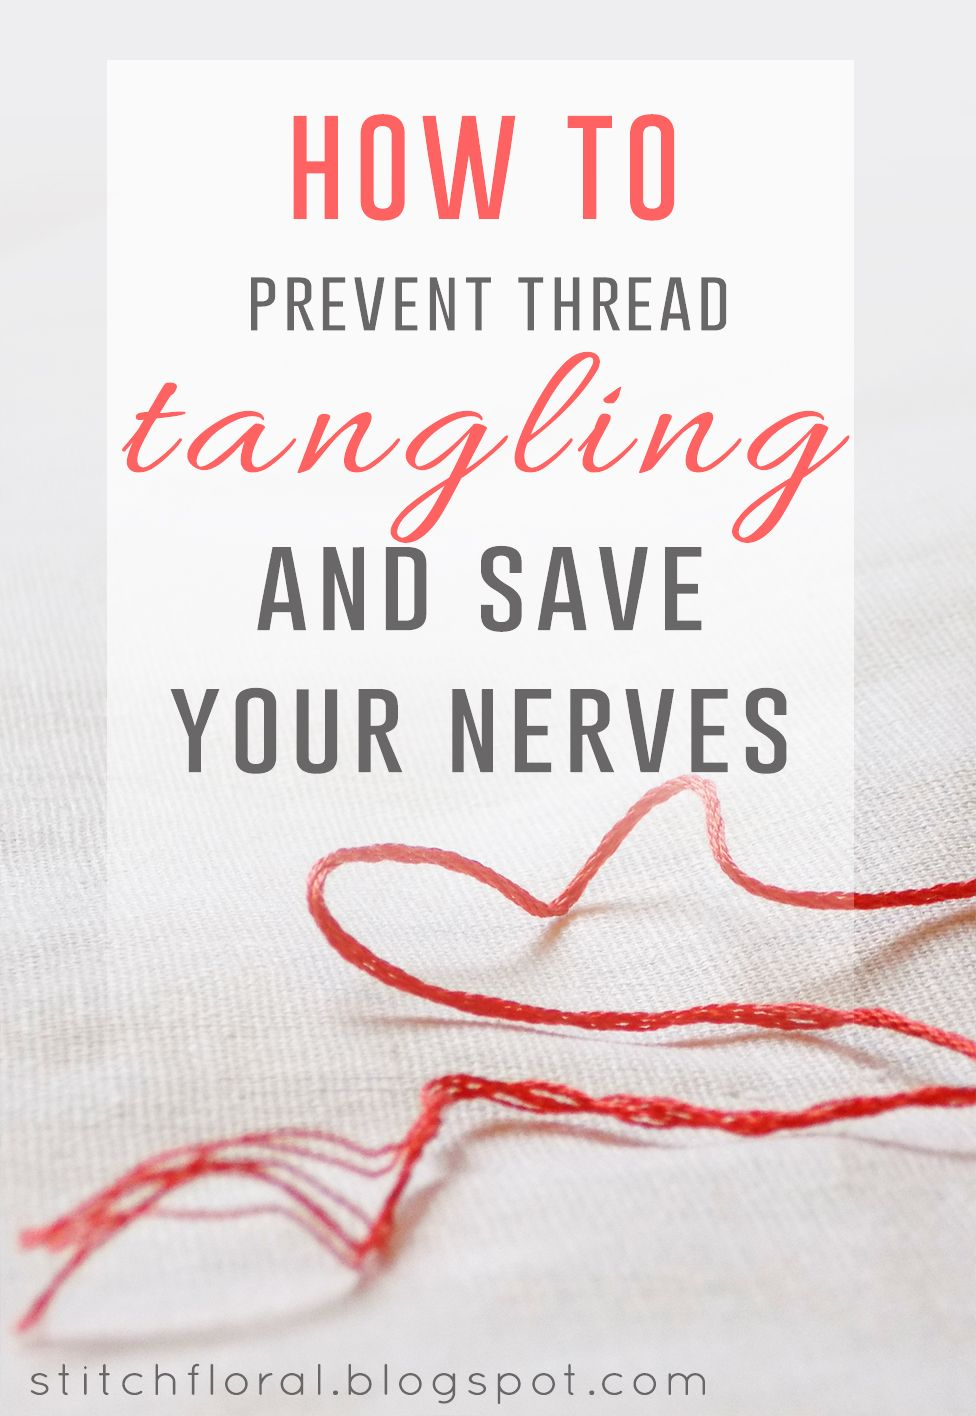 Embroidery Stitchery Tutorial: How To Prevent Thread Tangling And Save Your  Nerves from StitchFloral.blogspot.com. jwt